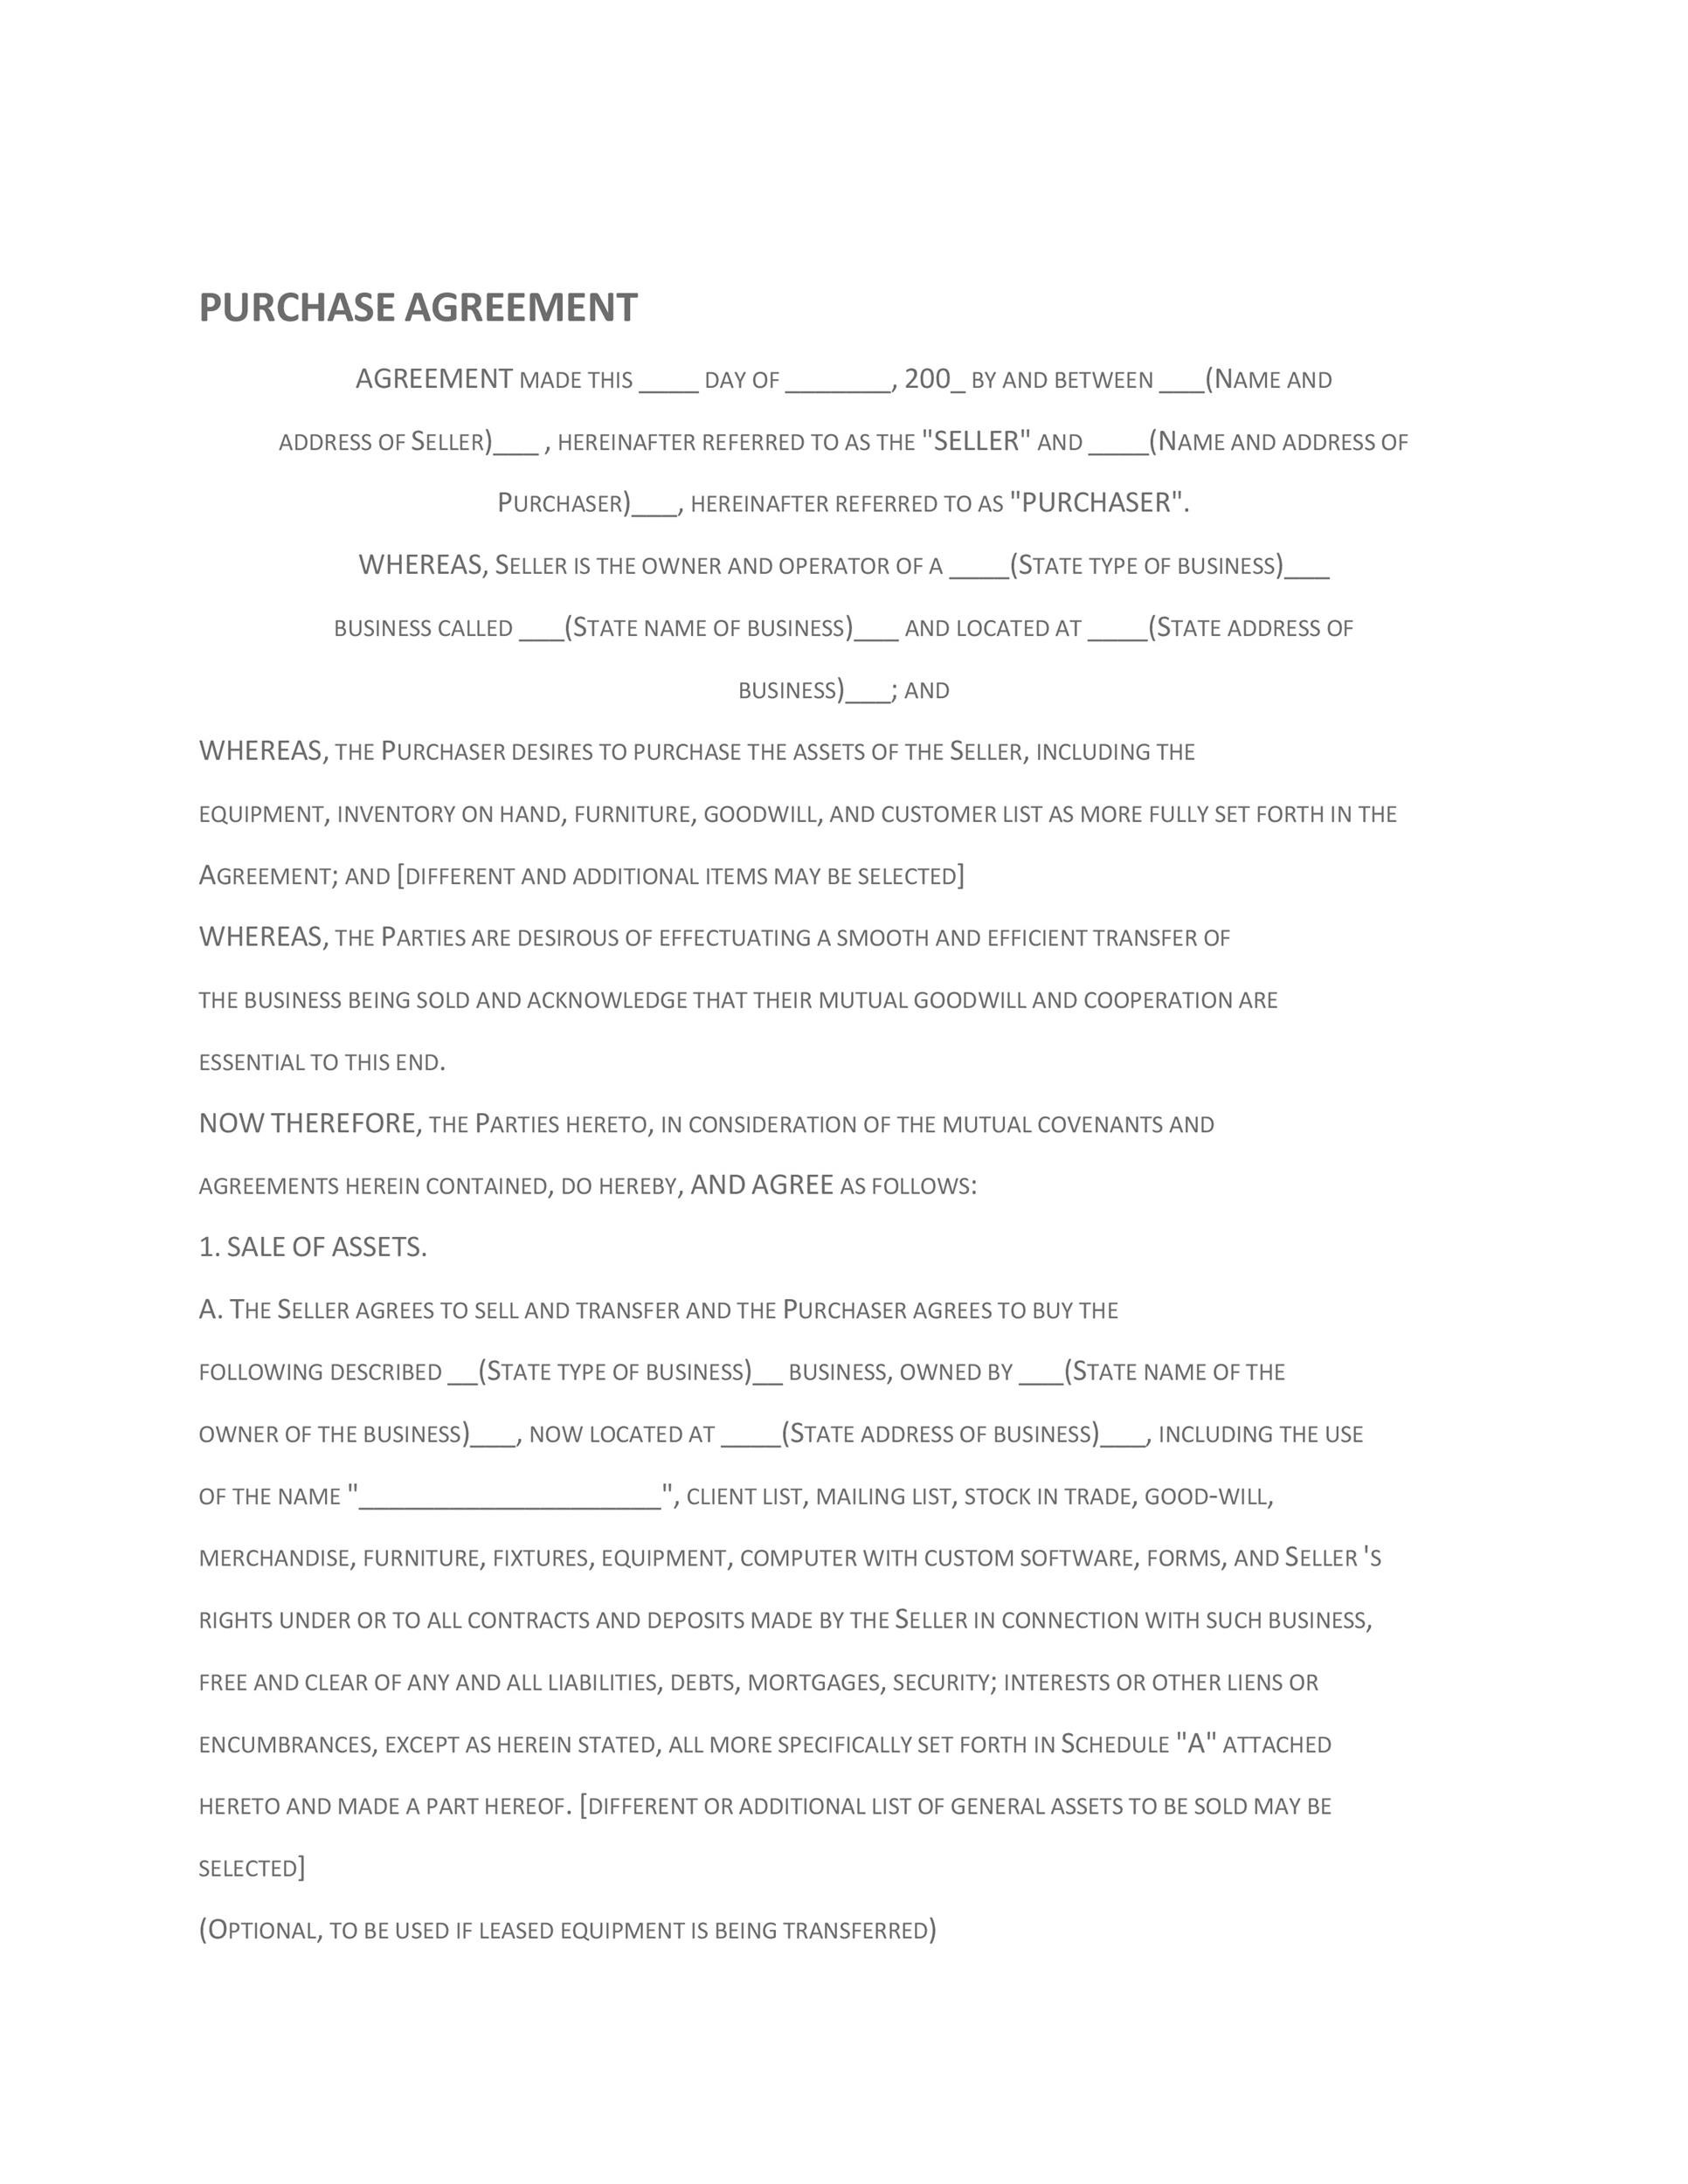 Superb Free Purchase Agreement Template 17